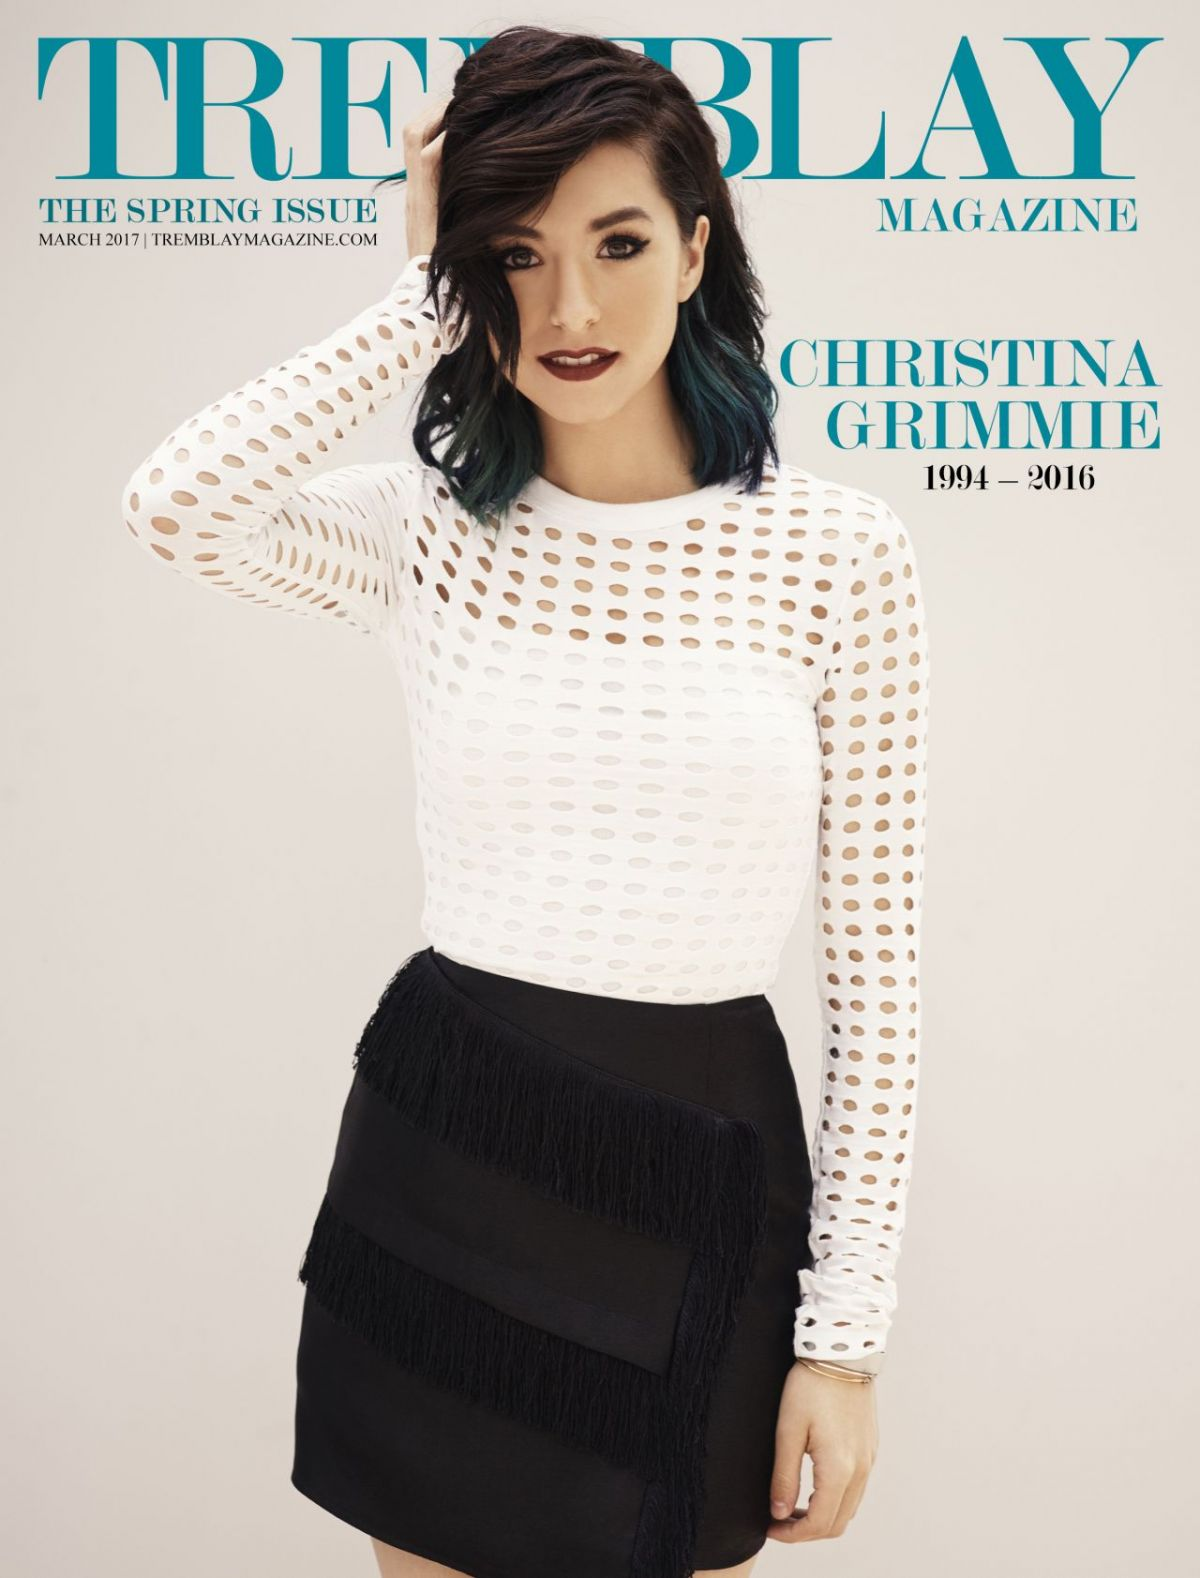 CHRISTINA GRIMMIE in Tremblay Magazine, Spring 2017